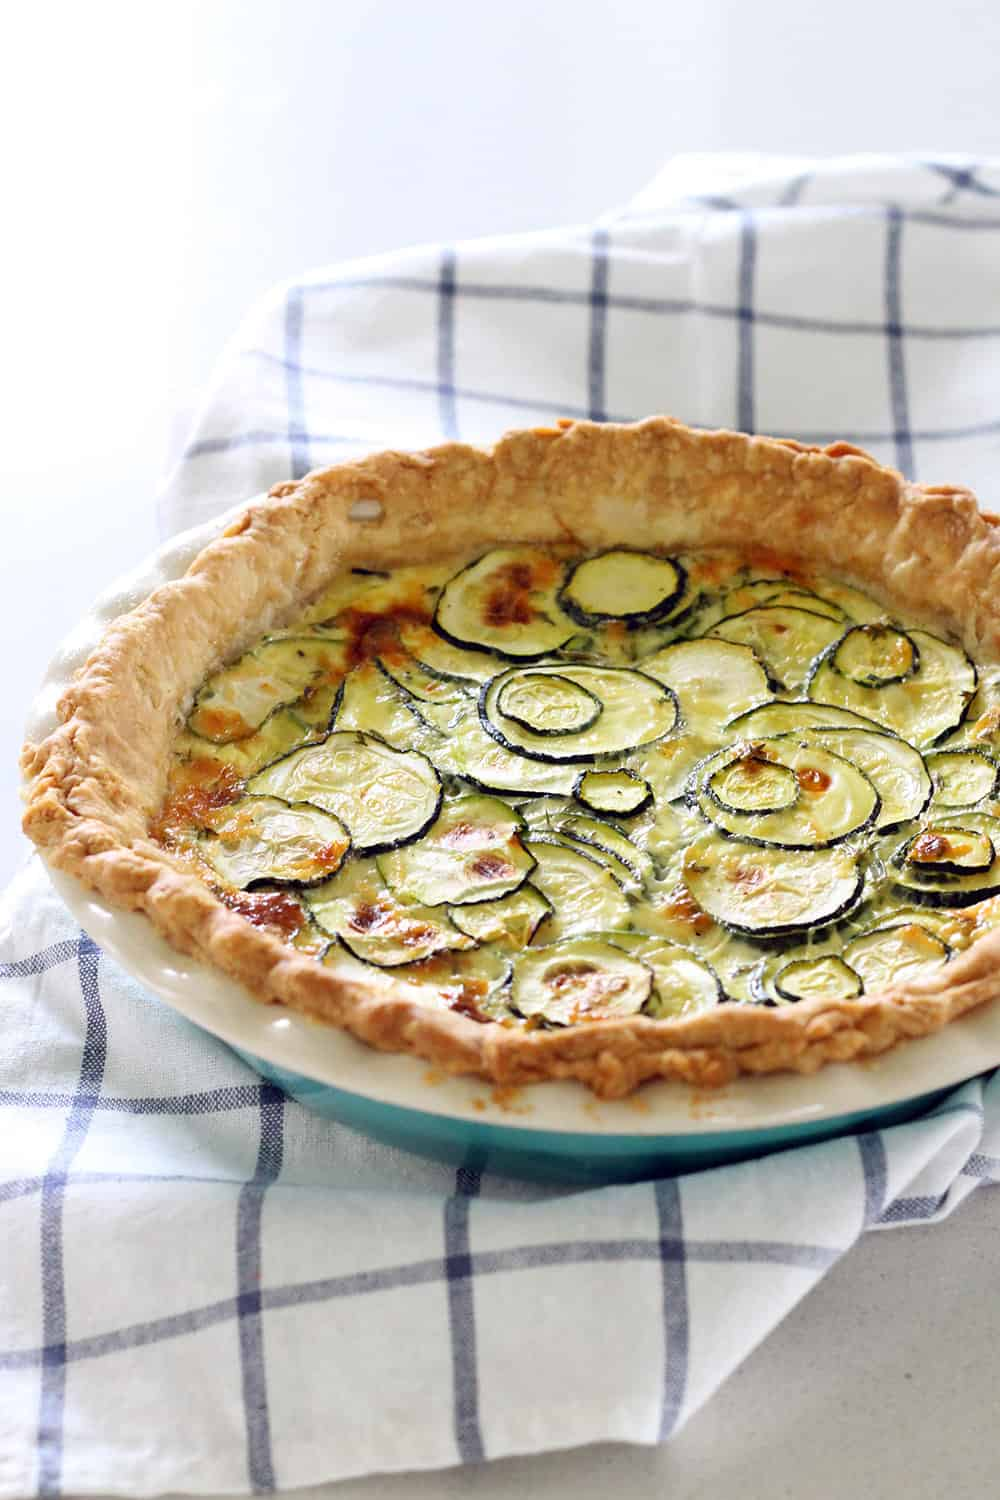 With only six ingredients and about 5 minutes of prep, this quiche is the ultimate easy (and GORGEOUS!) meal for breakfast, lunch, or dinner!